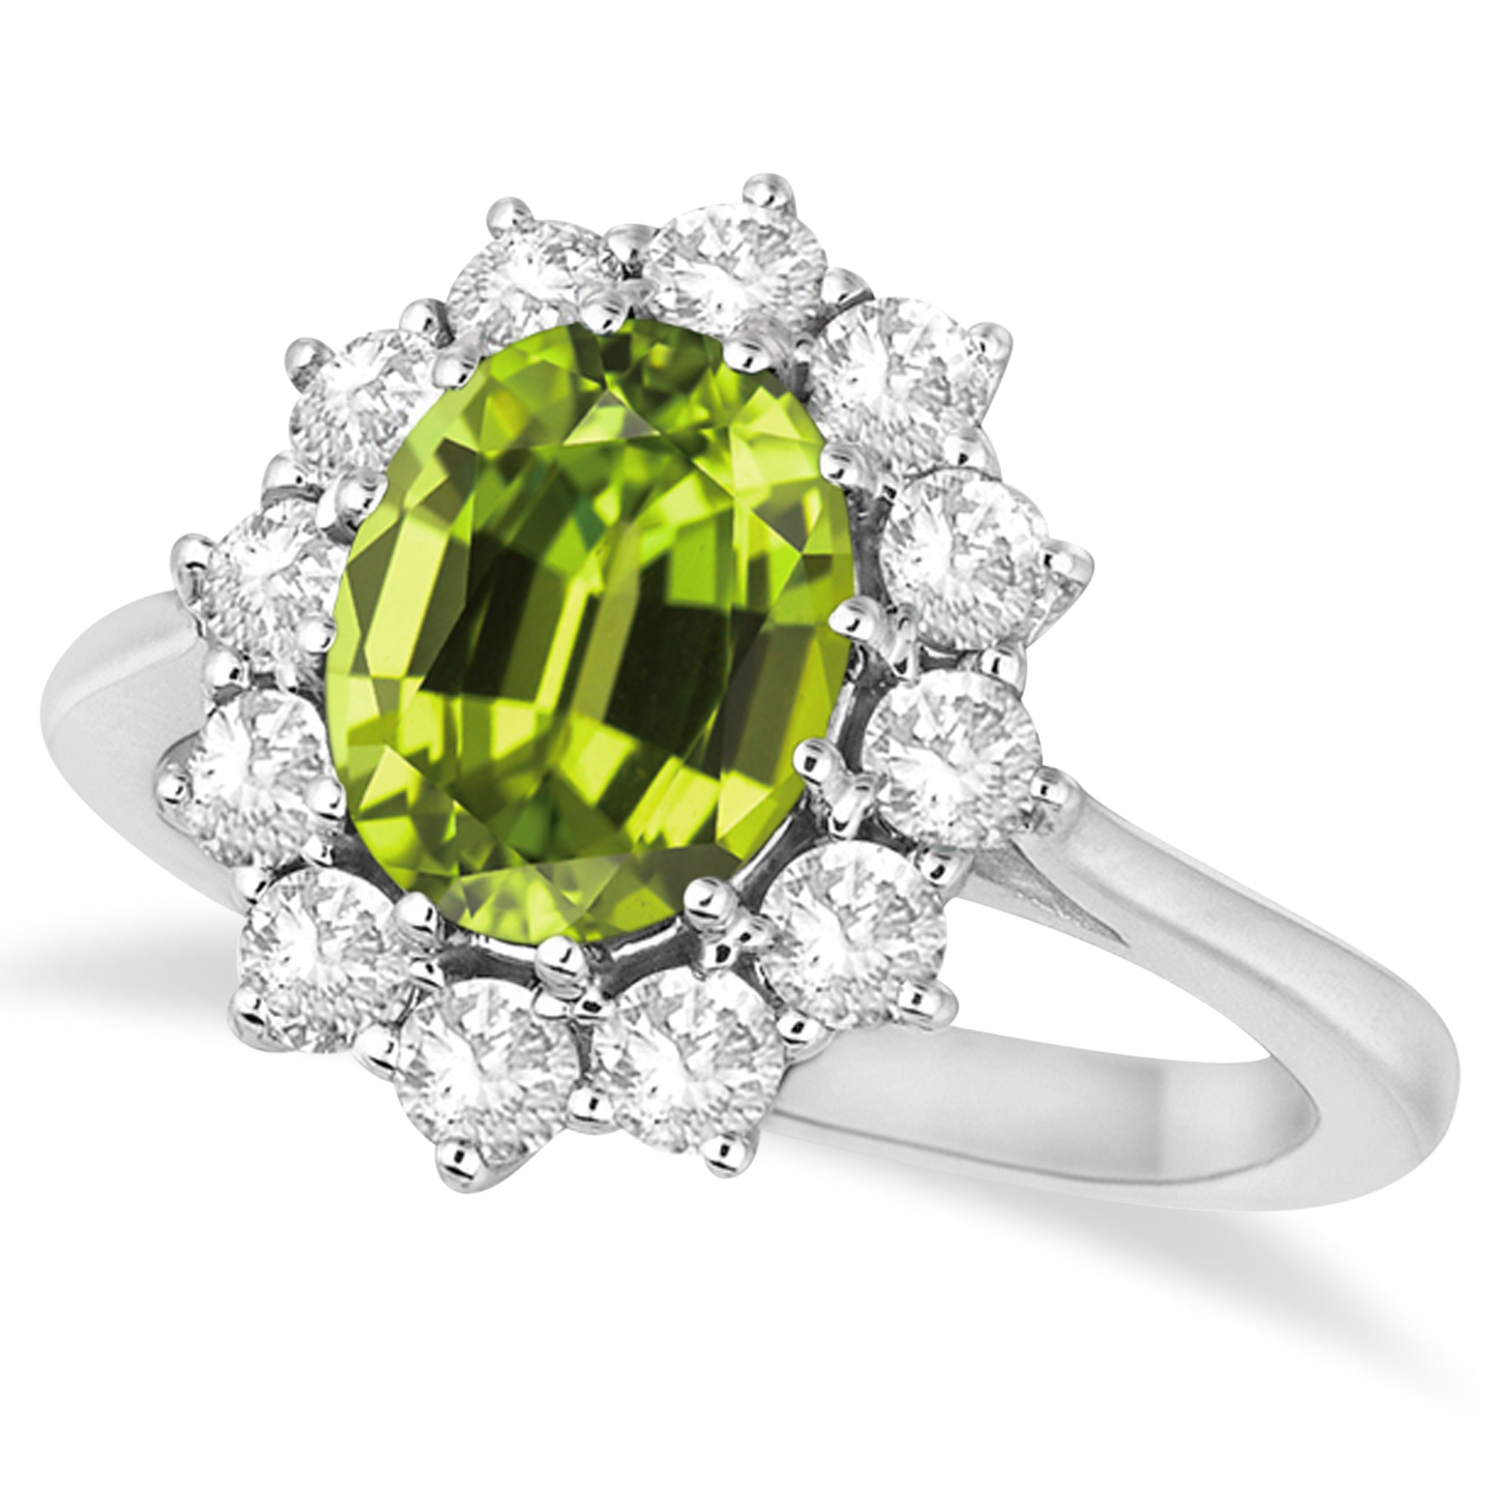 50fb458c498b0 Oval Peridot & Diamond Accented Ring in 14k White Gold (3.60ctw)